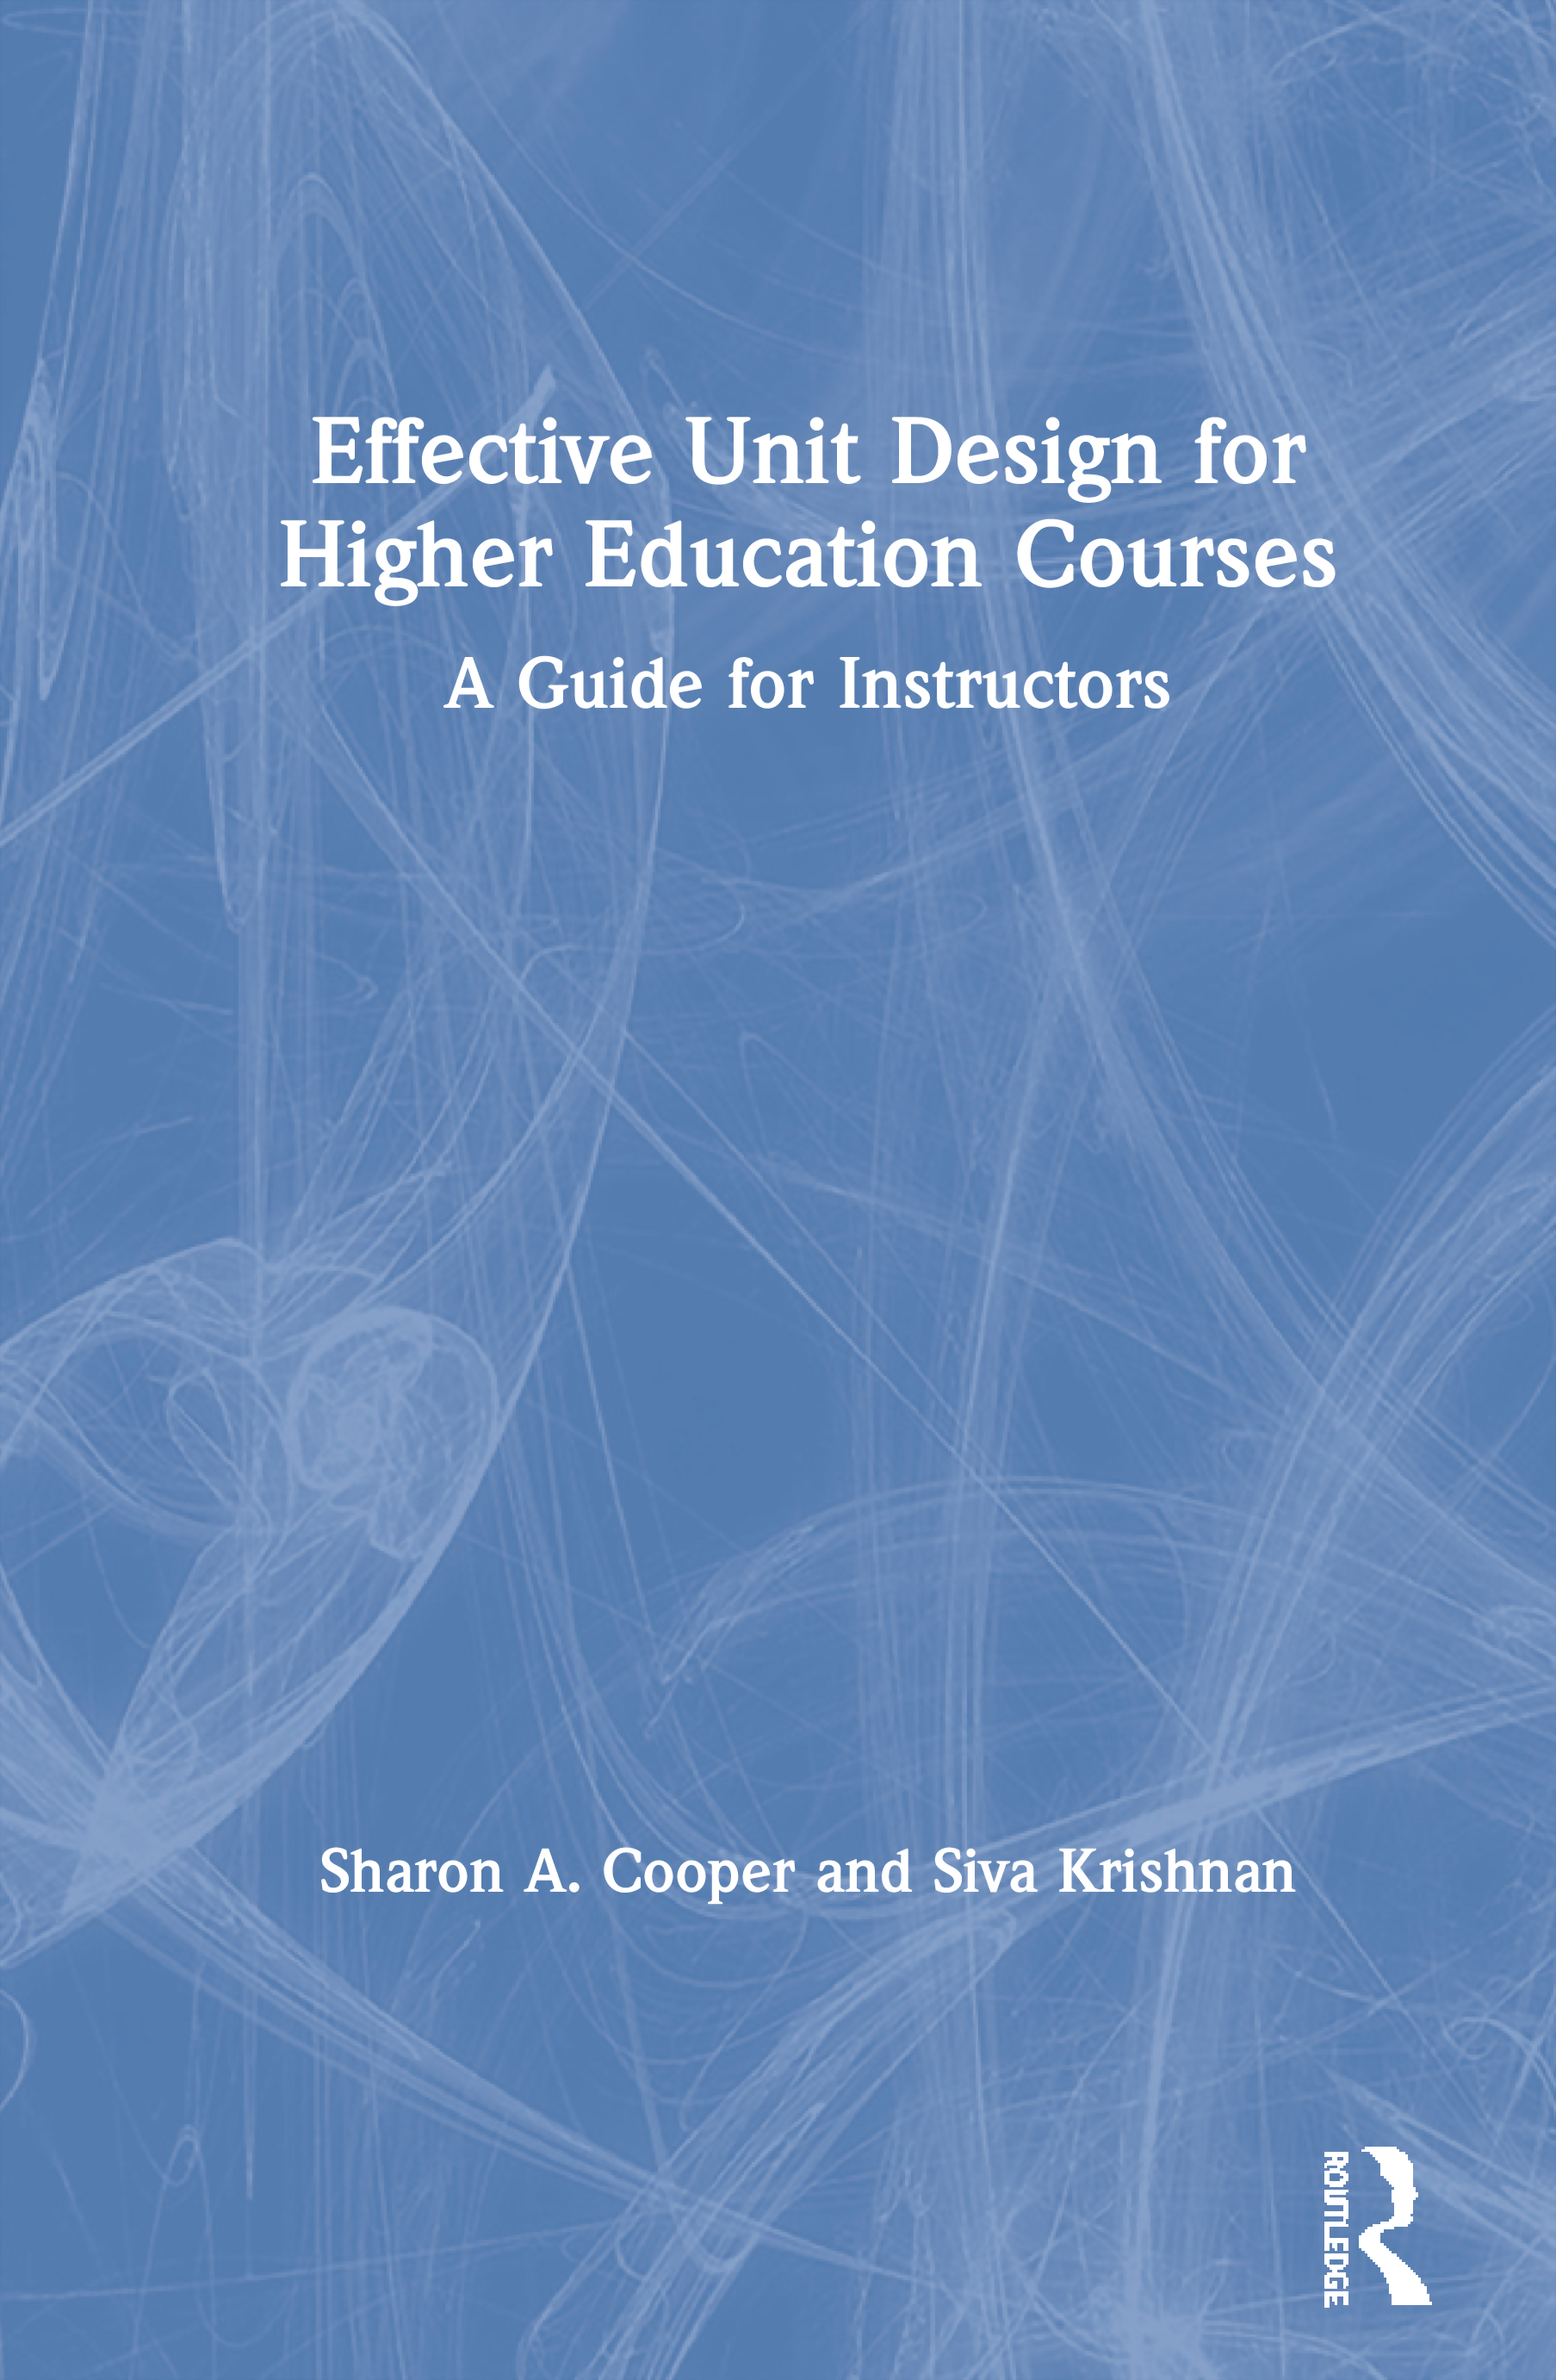 Effective Unit Design for Higher Education Courses: A Guide for Instructors book cover